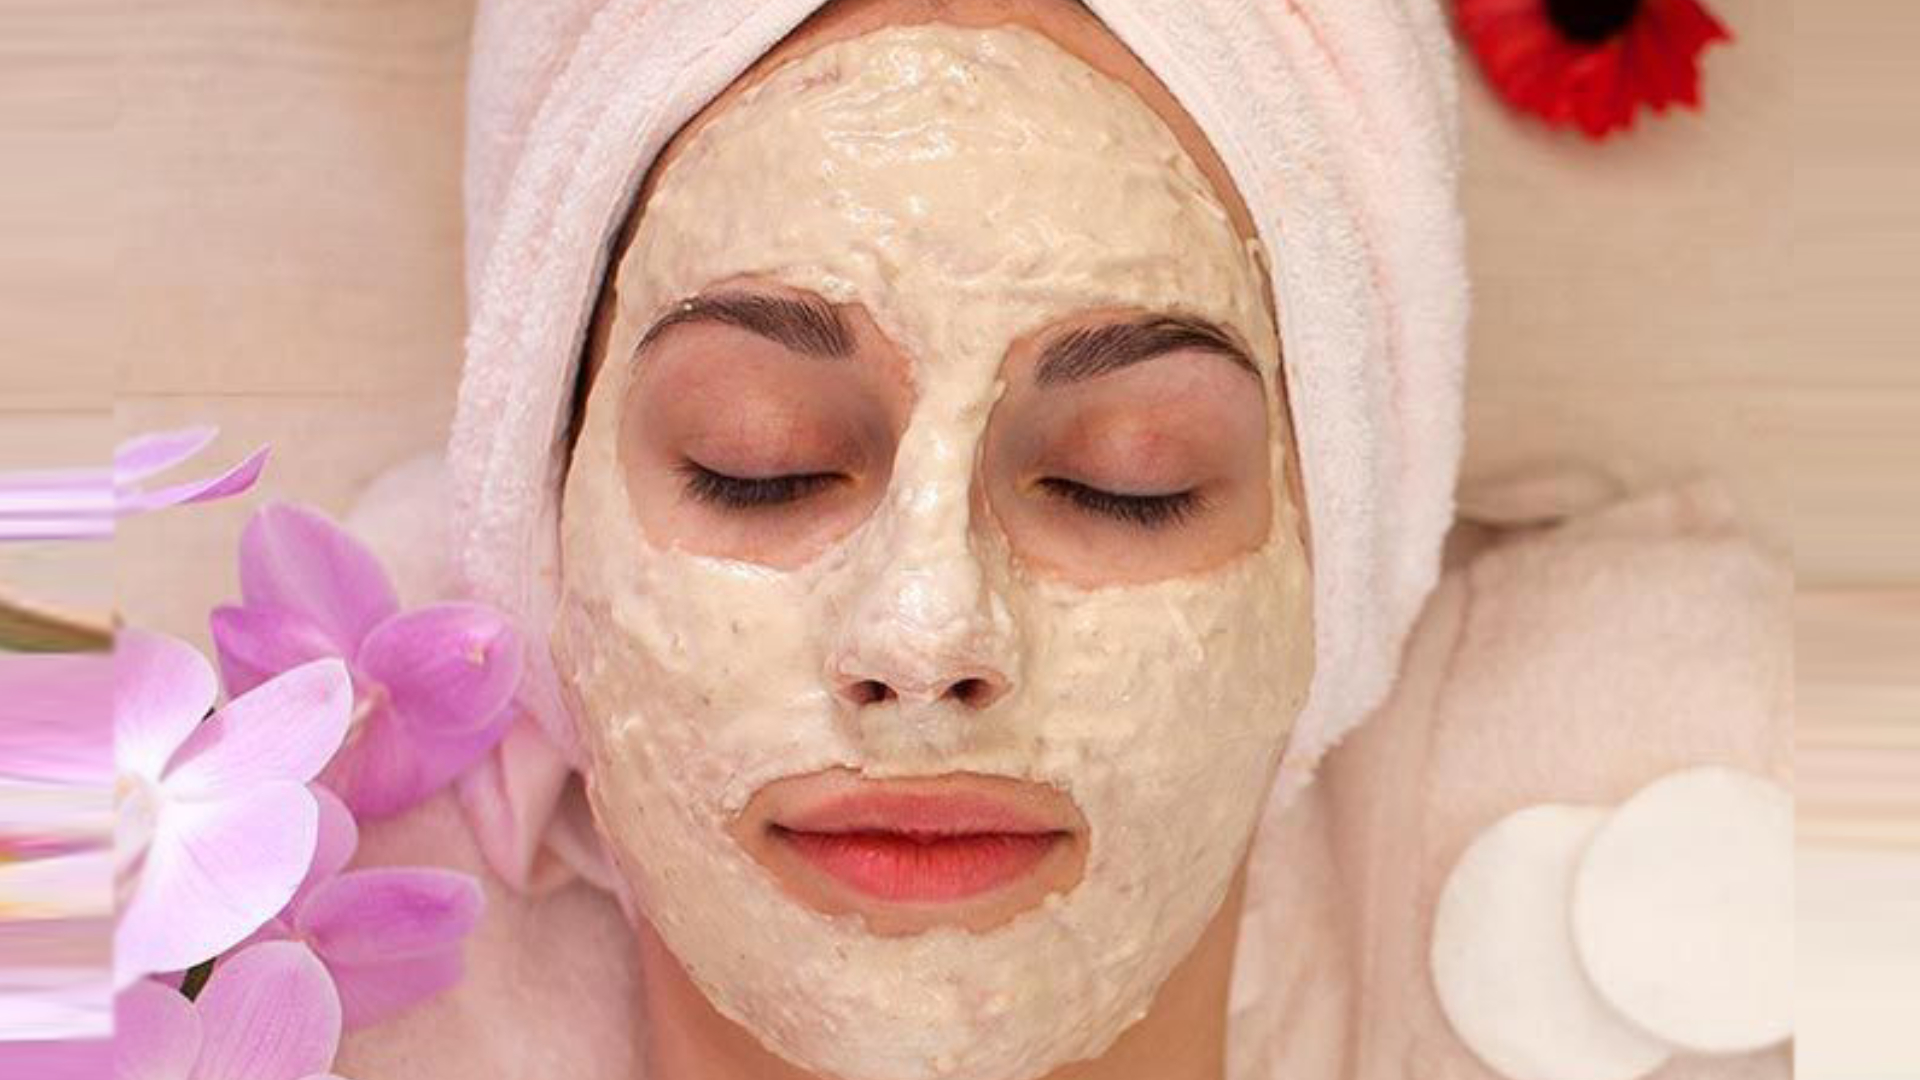 Skin Care Tips Summer Homemade Face Pack Beauty Tips Home Remedies In Hindi Beauty Tips गर म य म घर पर बन ए य 3 फ स प क ख बस रत क स थ म ल ग कई पर श न य स